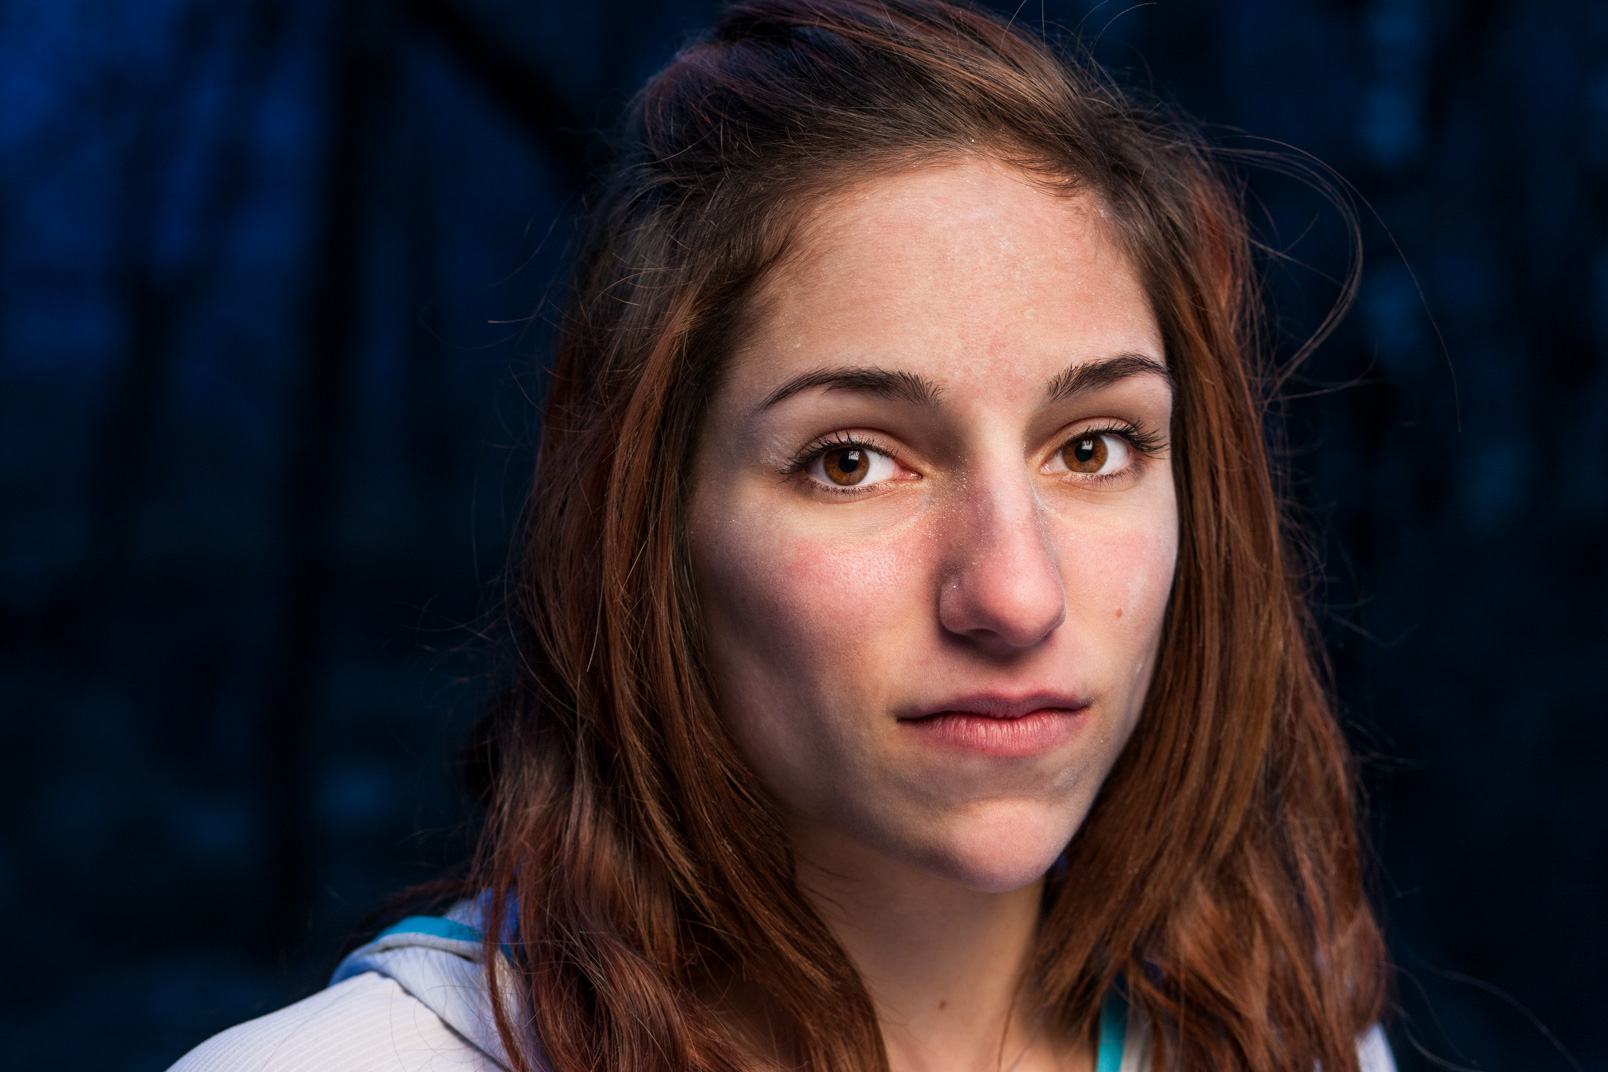 Alex Puccio | Stefan Kuerzi Adventure Photography